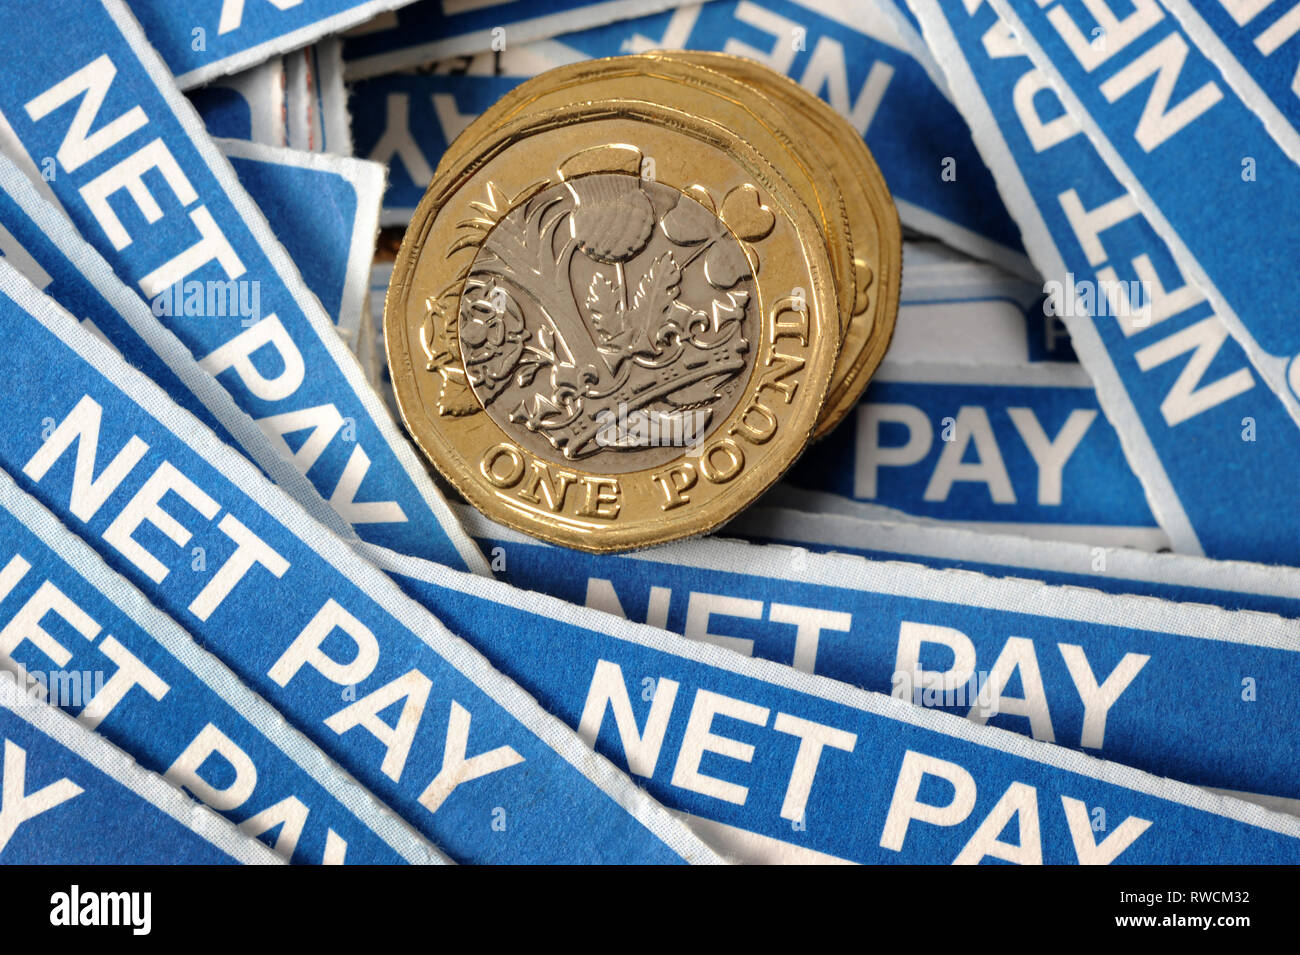 PAYSLIPS WITH ONE POUND COINS RE NET PAY WAGES INCOMES THE ECONOMY MORTGAGES HOUSE BUYERS ETC UK - Stock Image